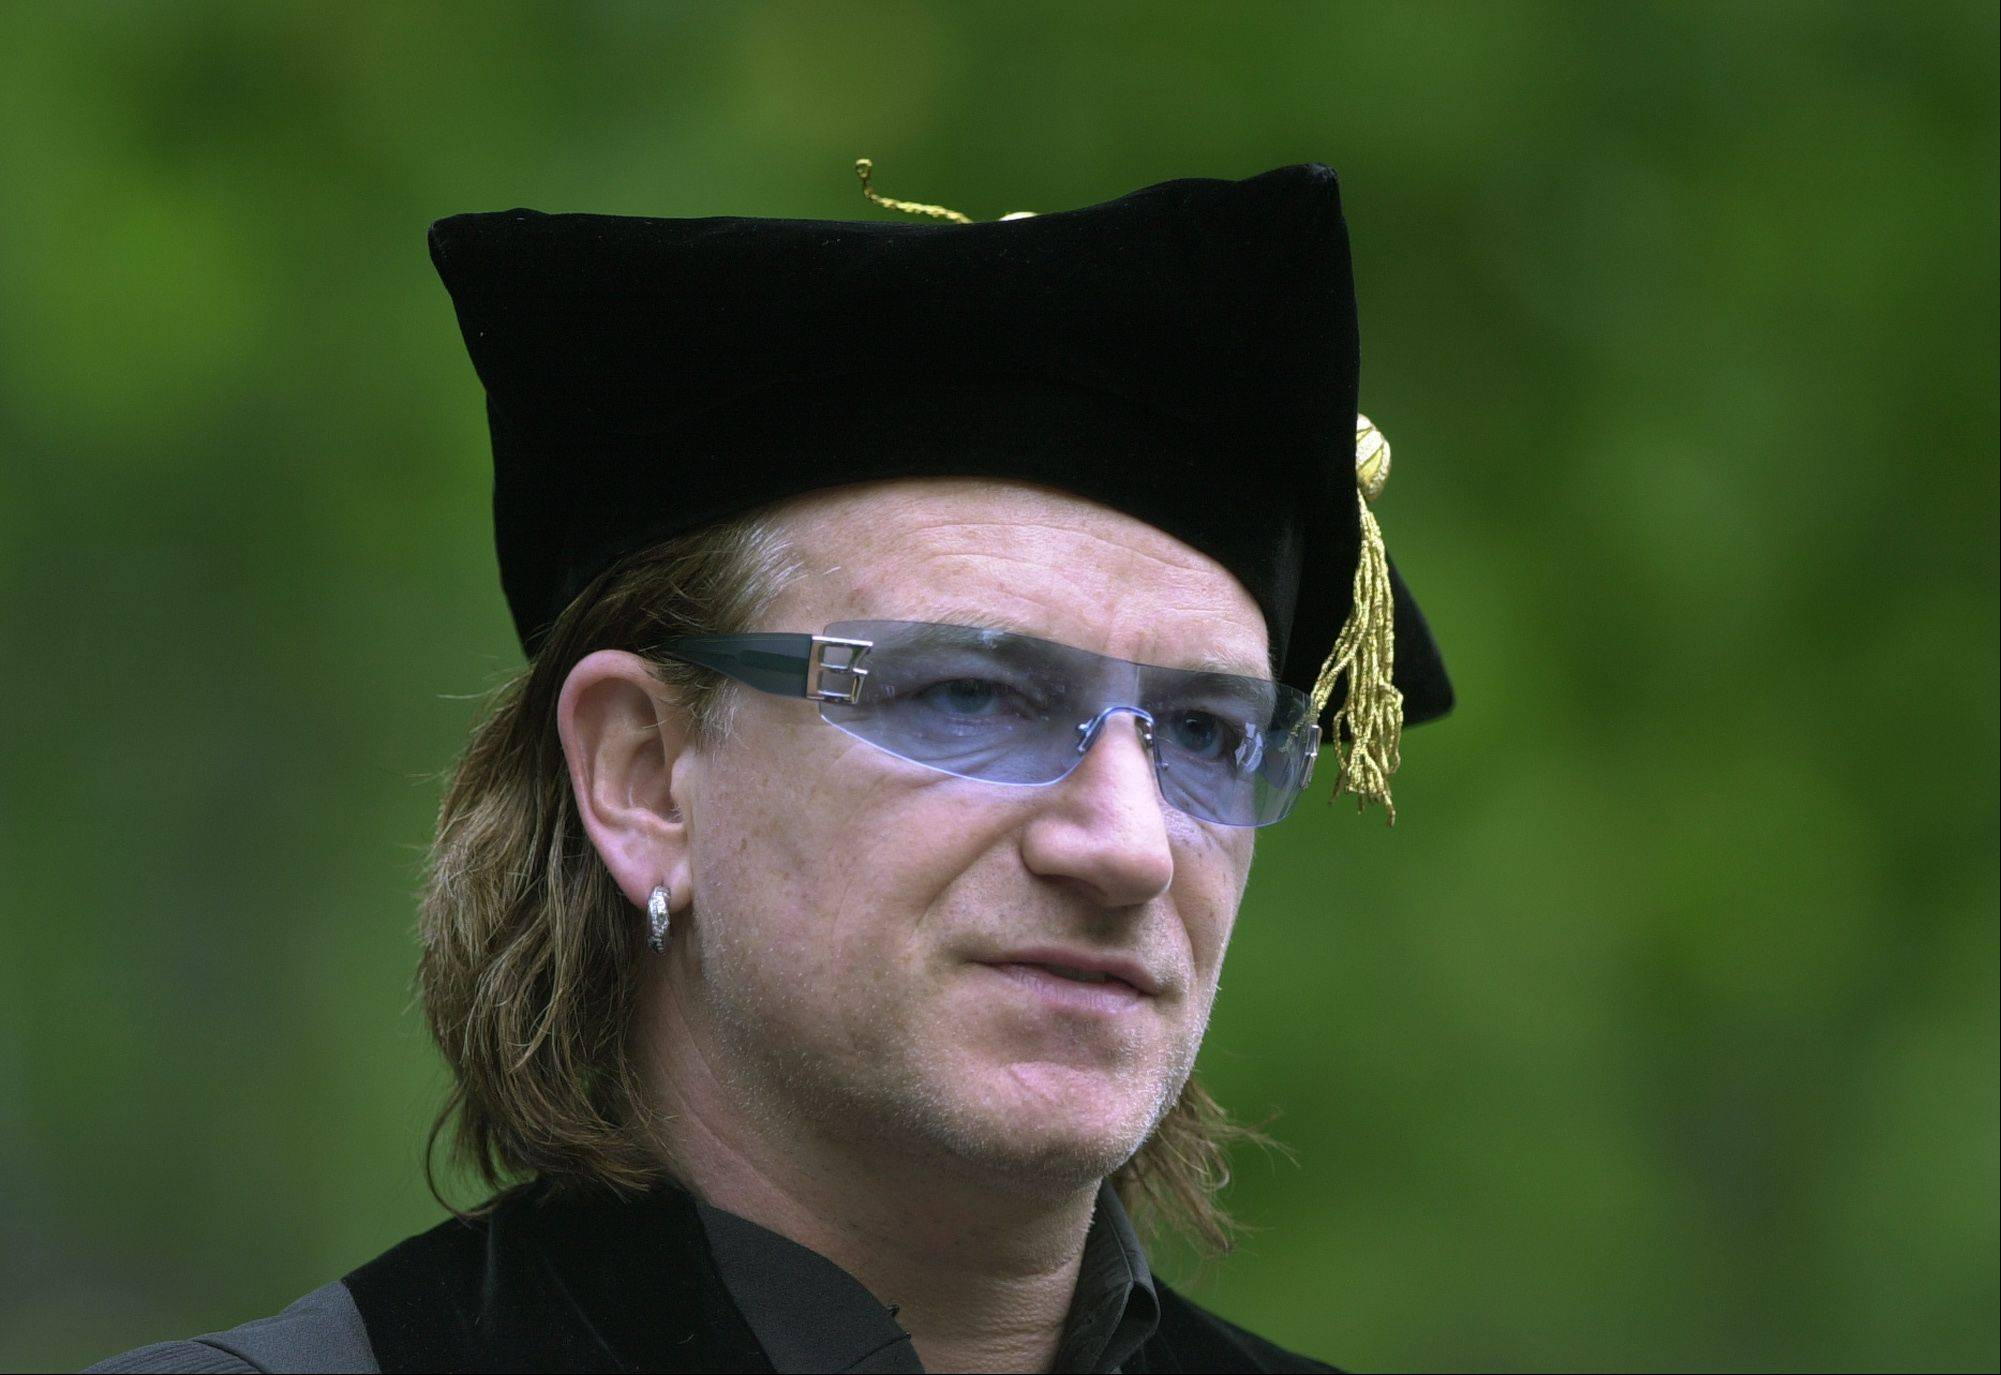 Bono, lead singer of the rock group U2, watches University of Pennsylvania graduate candidates walk toward their commencement ceremony in Philadelphia, Monday, May 17, 2004. Bono delivered the commencement address at the ceremony during which he was also awarded an honorary Doctor of Laws degree.